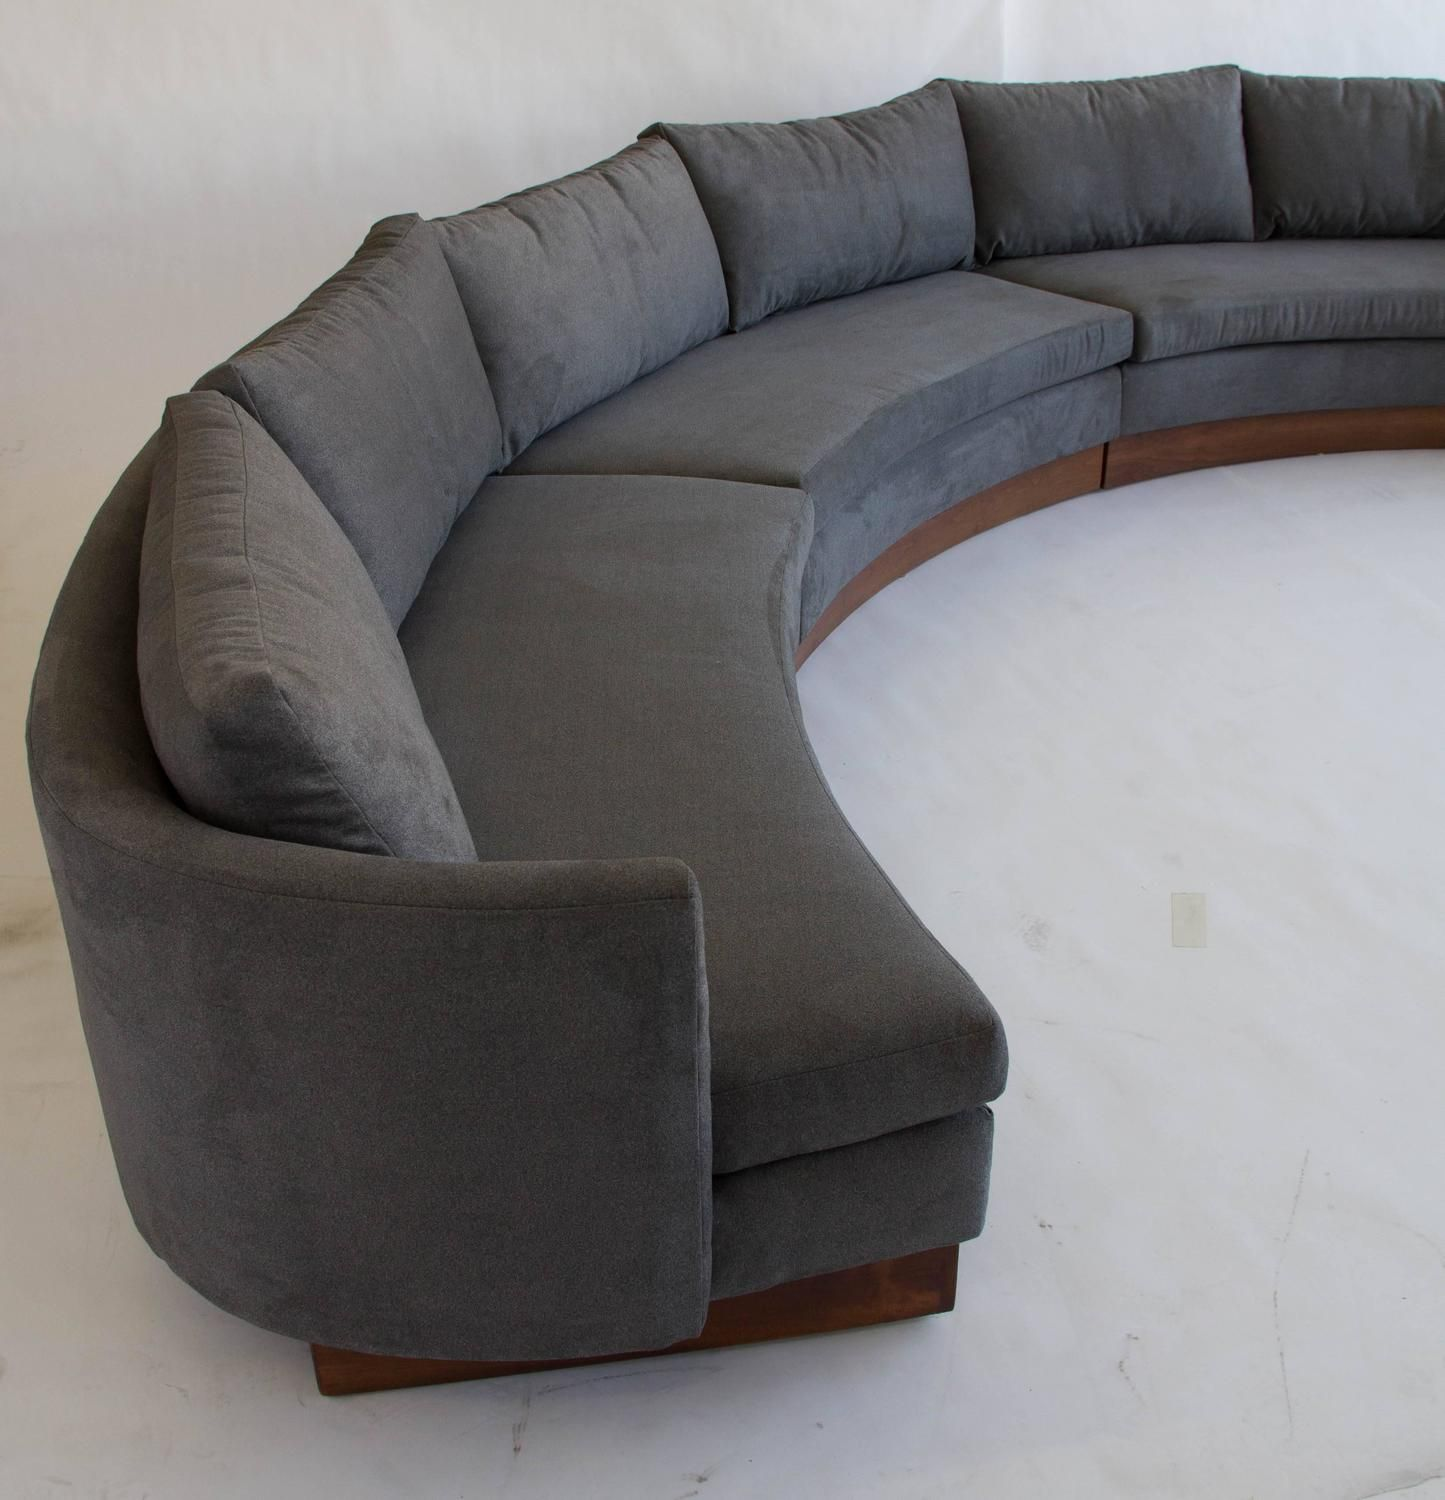 Custom Semi Circular Sectional By Carson S Of North Carolina From A Unique Collection